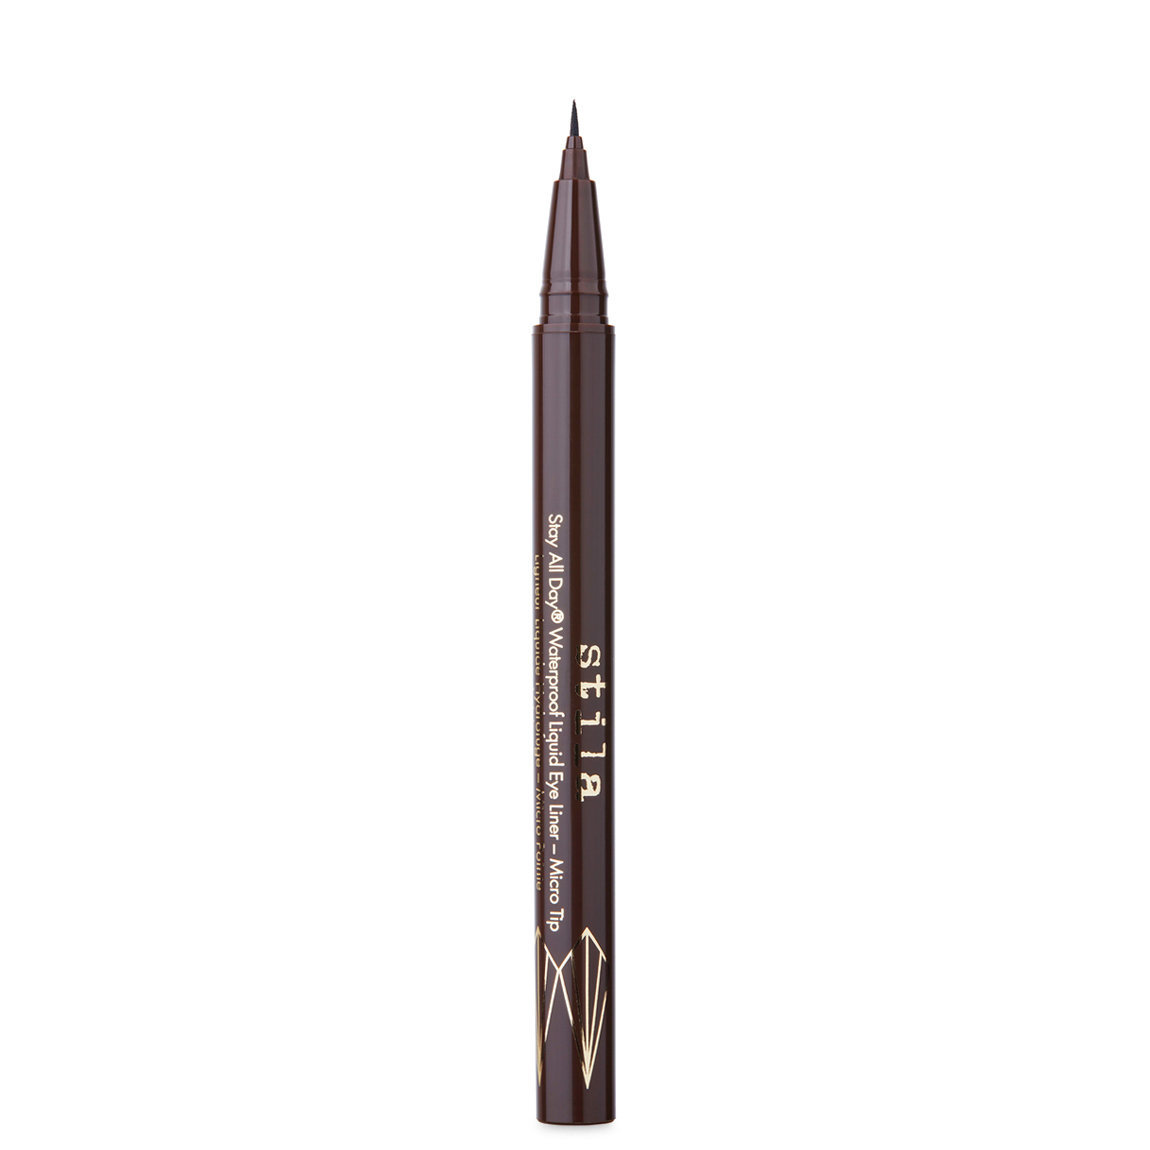 Stila Stay All Day Waterproof Liquid Liner Micro Tip Dark Brown alternative view 1 - product swatch.